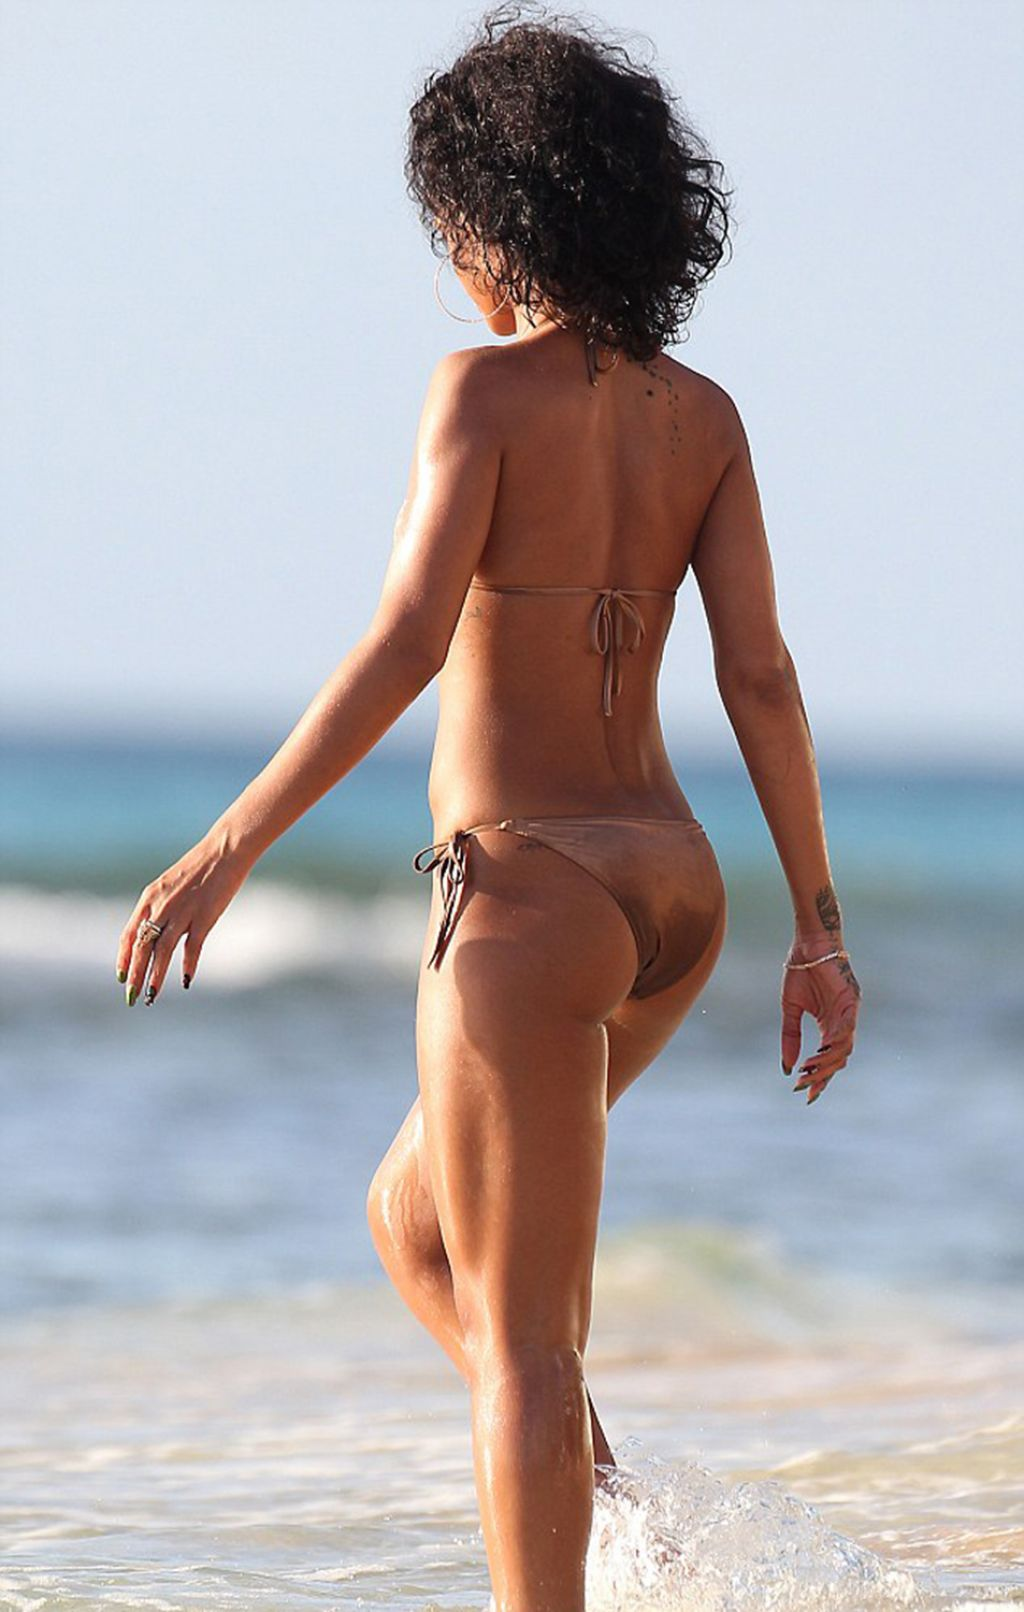 HOT GB...FAV1318 Rihanna nude hotel pictures